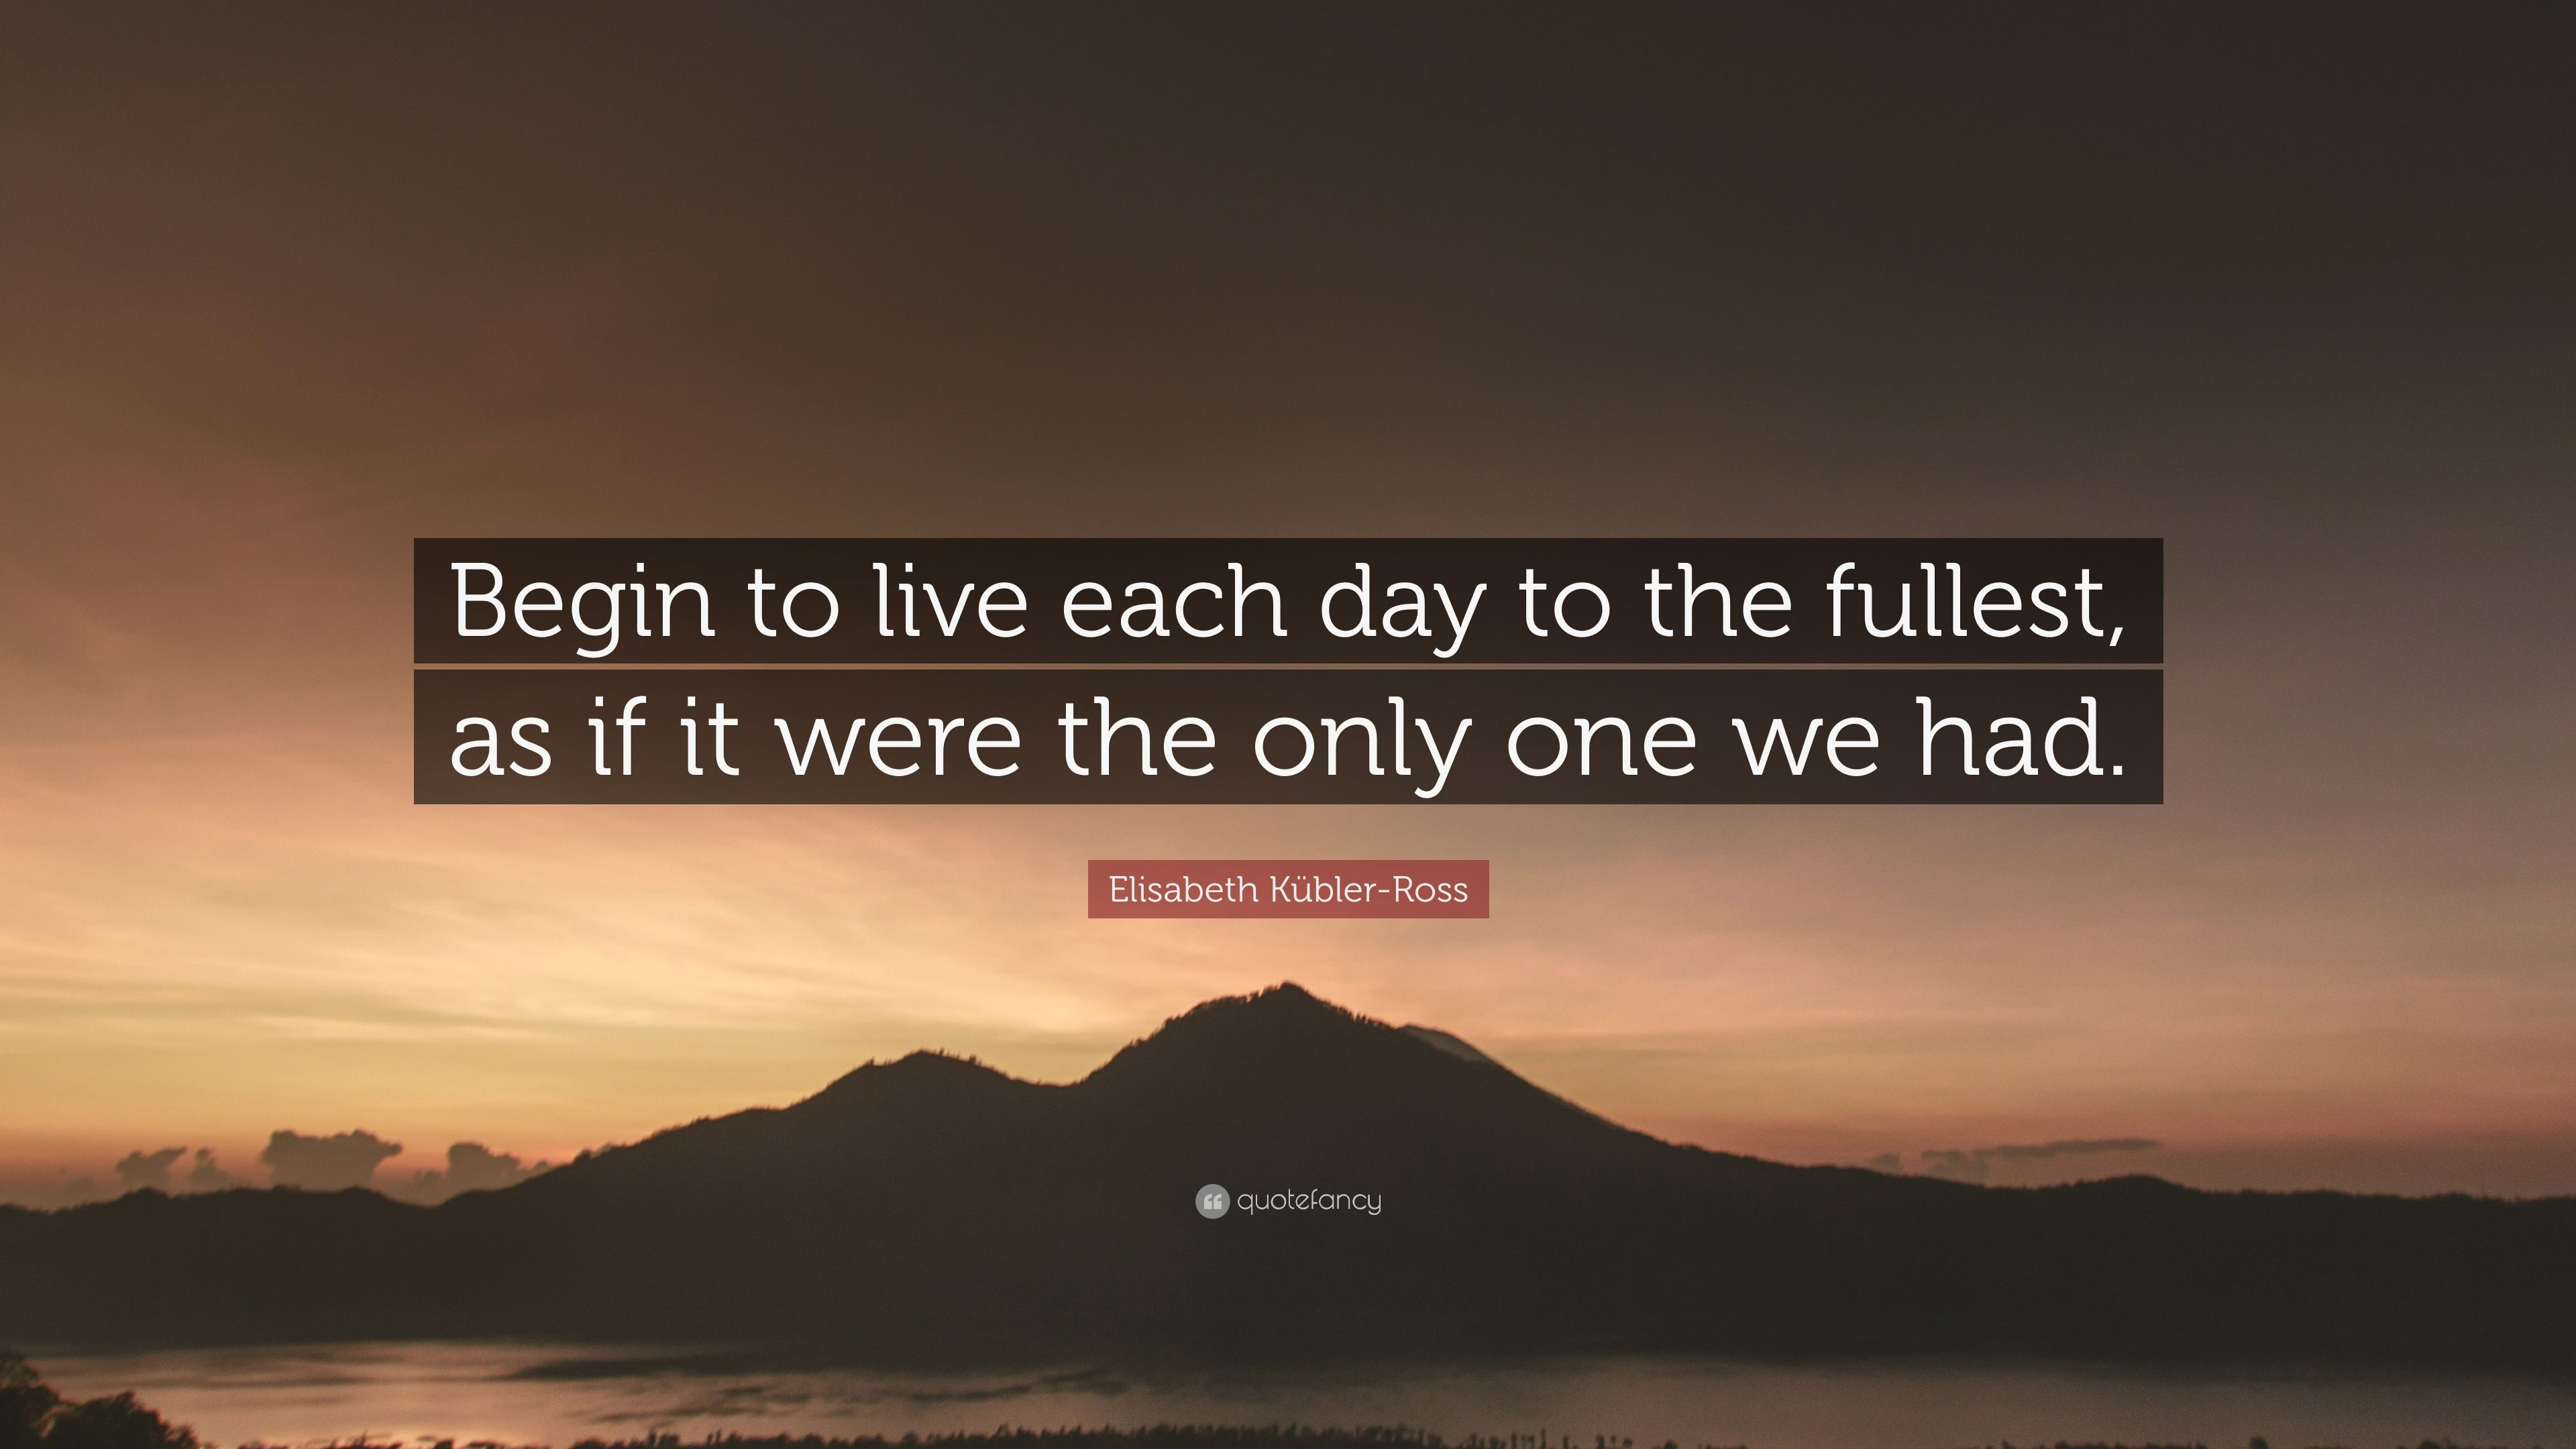 Royalty Free Live Each Day To The Fullest Quotes